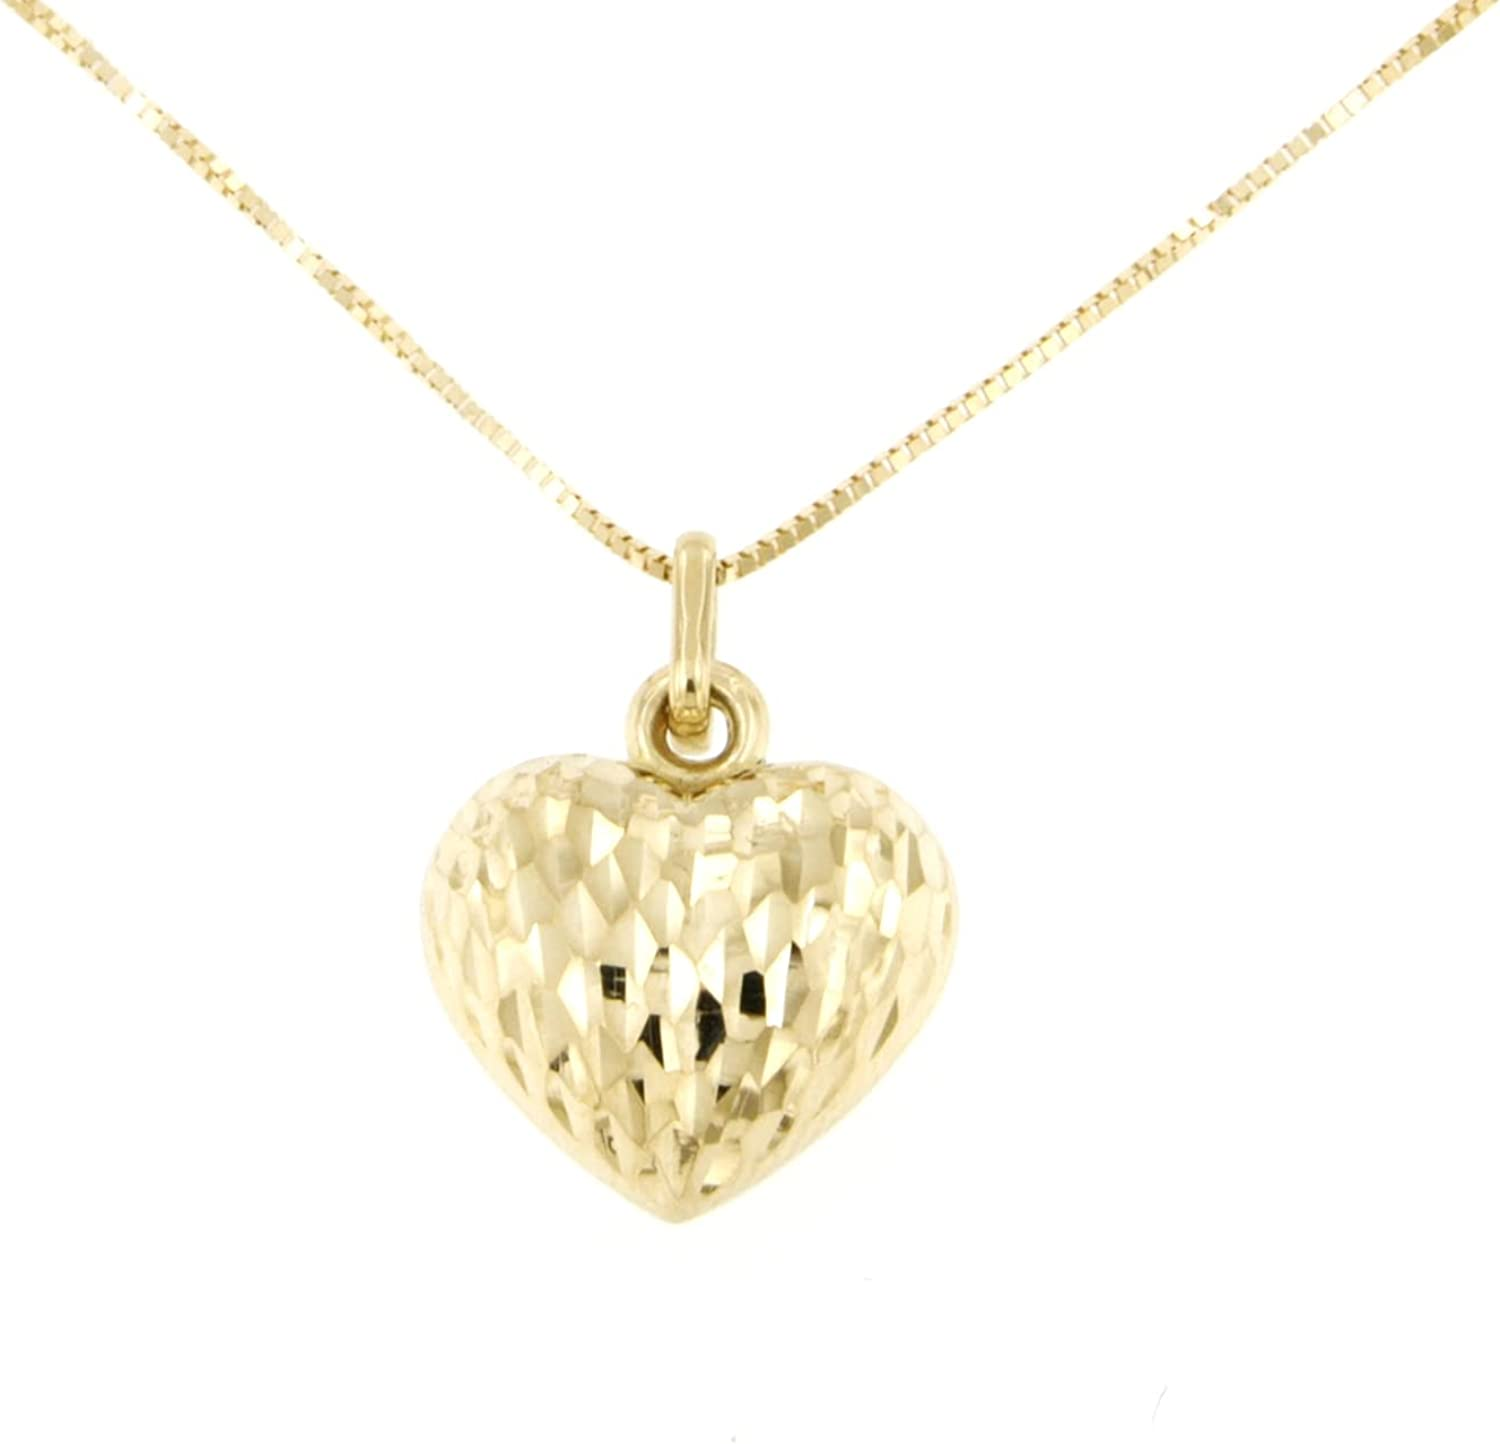 Lucchetta - Premium 14 karat Yellow Gold Necklace with Heart Pendant Textured, 16+2 inch, 14k Italian Solid Gold Necklaces for Women Teen Girls, Made in Italy Fine Jewelry, XD2910-VE38